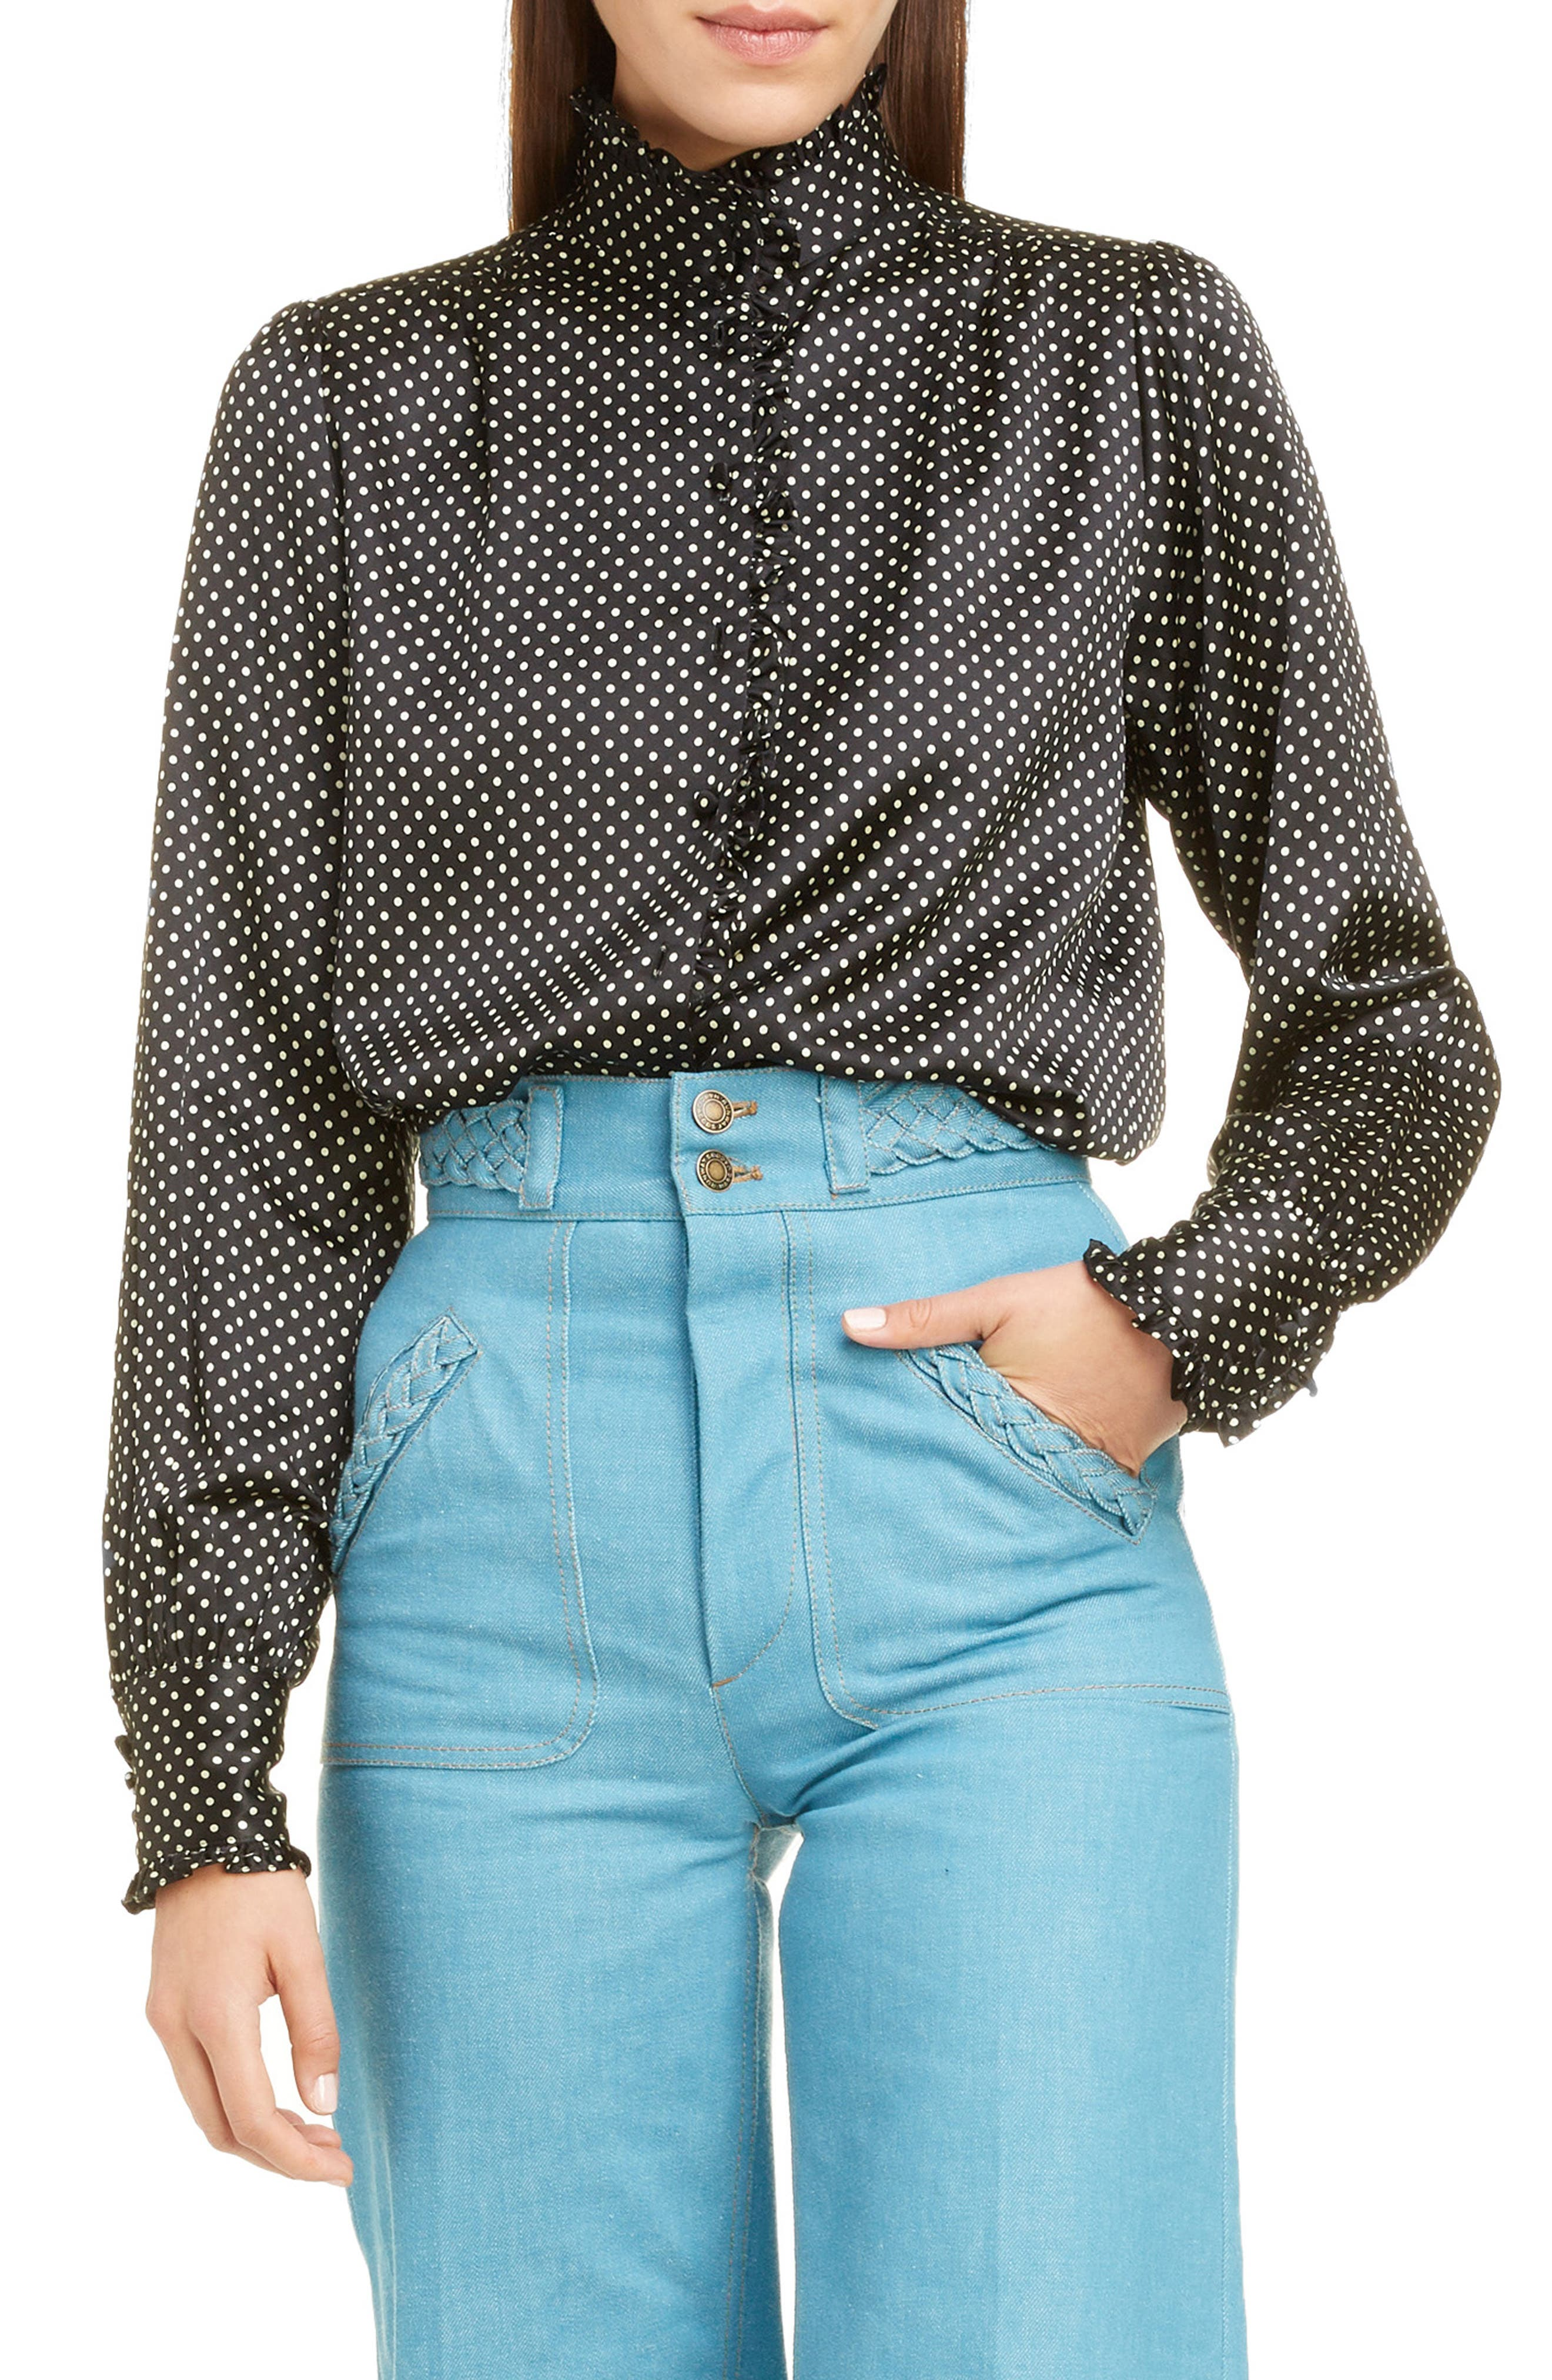 Frilly trim enhances the whimsical appeal of this polka-dot blouse fashioned from light, luminous silk. Style Name: Runway Marc Jacobs Ruffle Trim Polka Dot Silk Blouse. Style Number: 6031175. Available in stores.